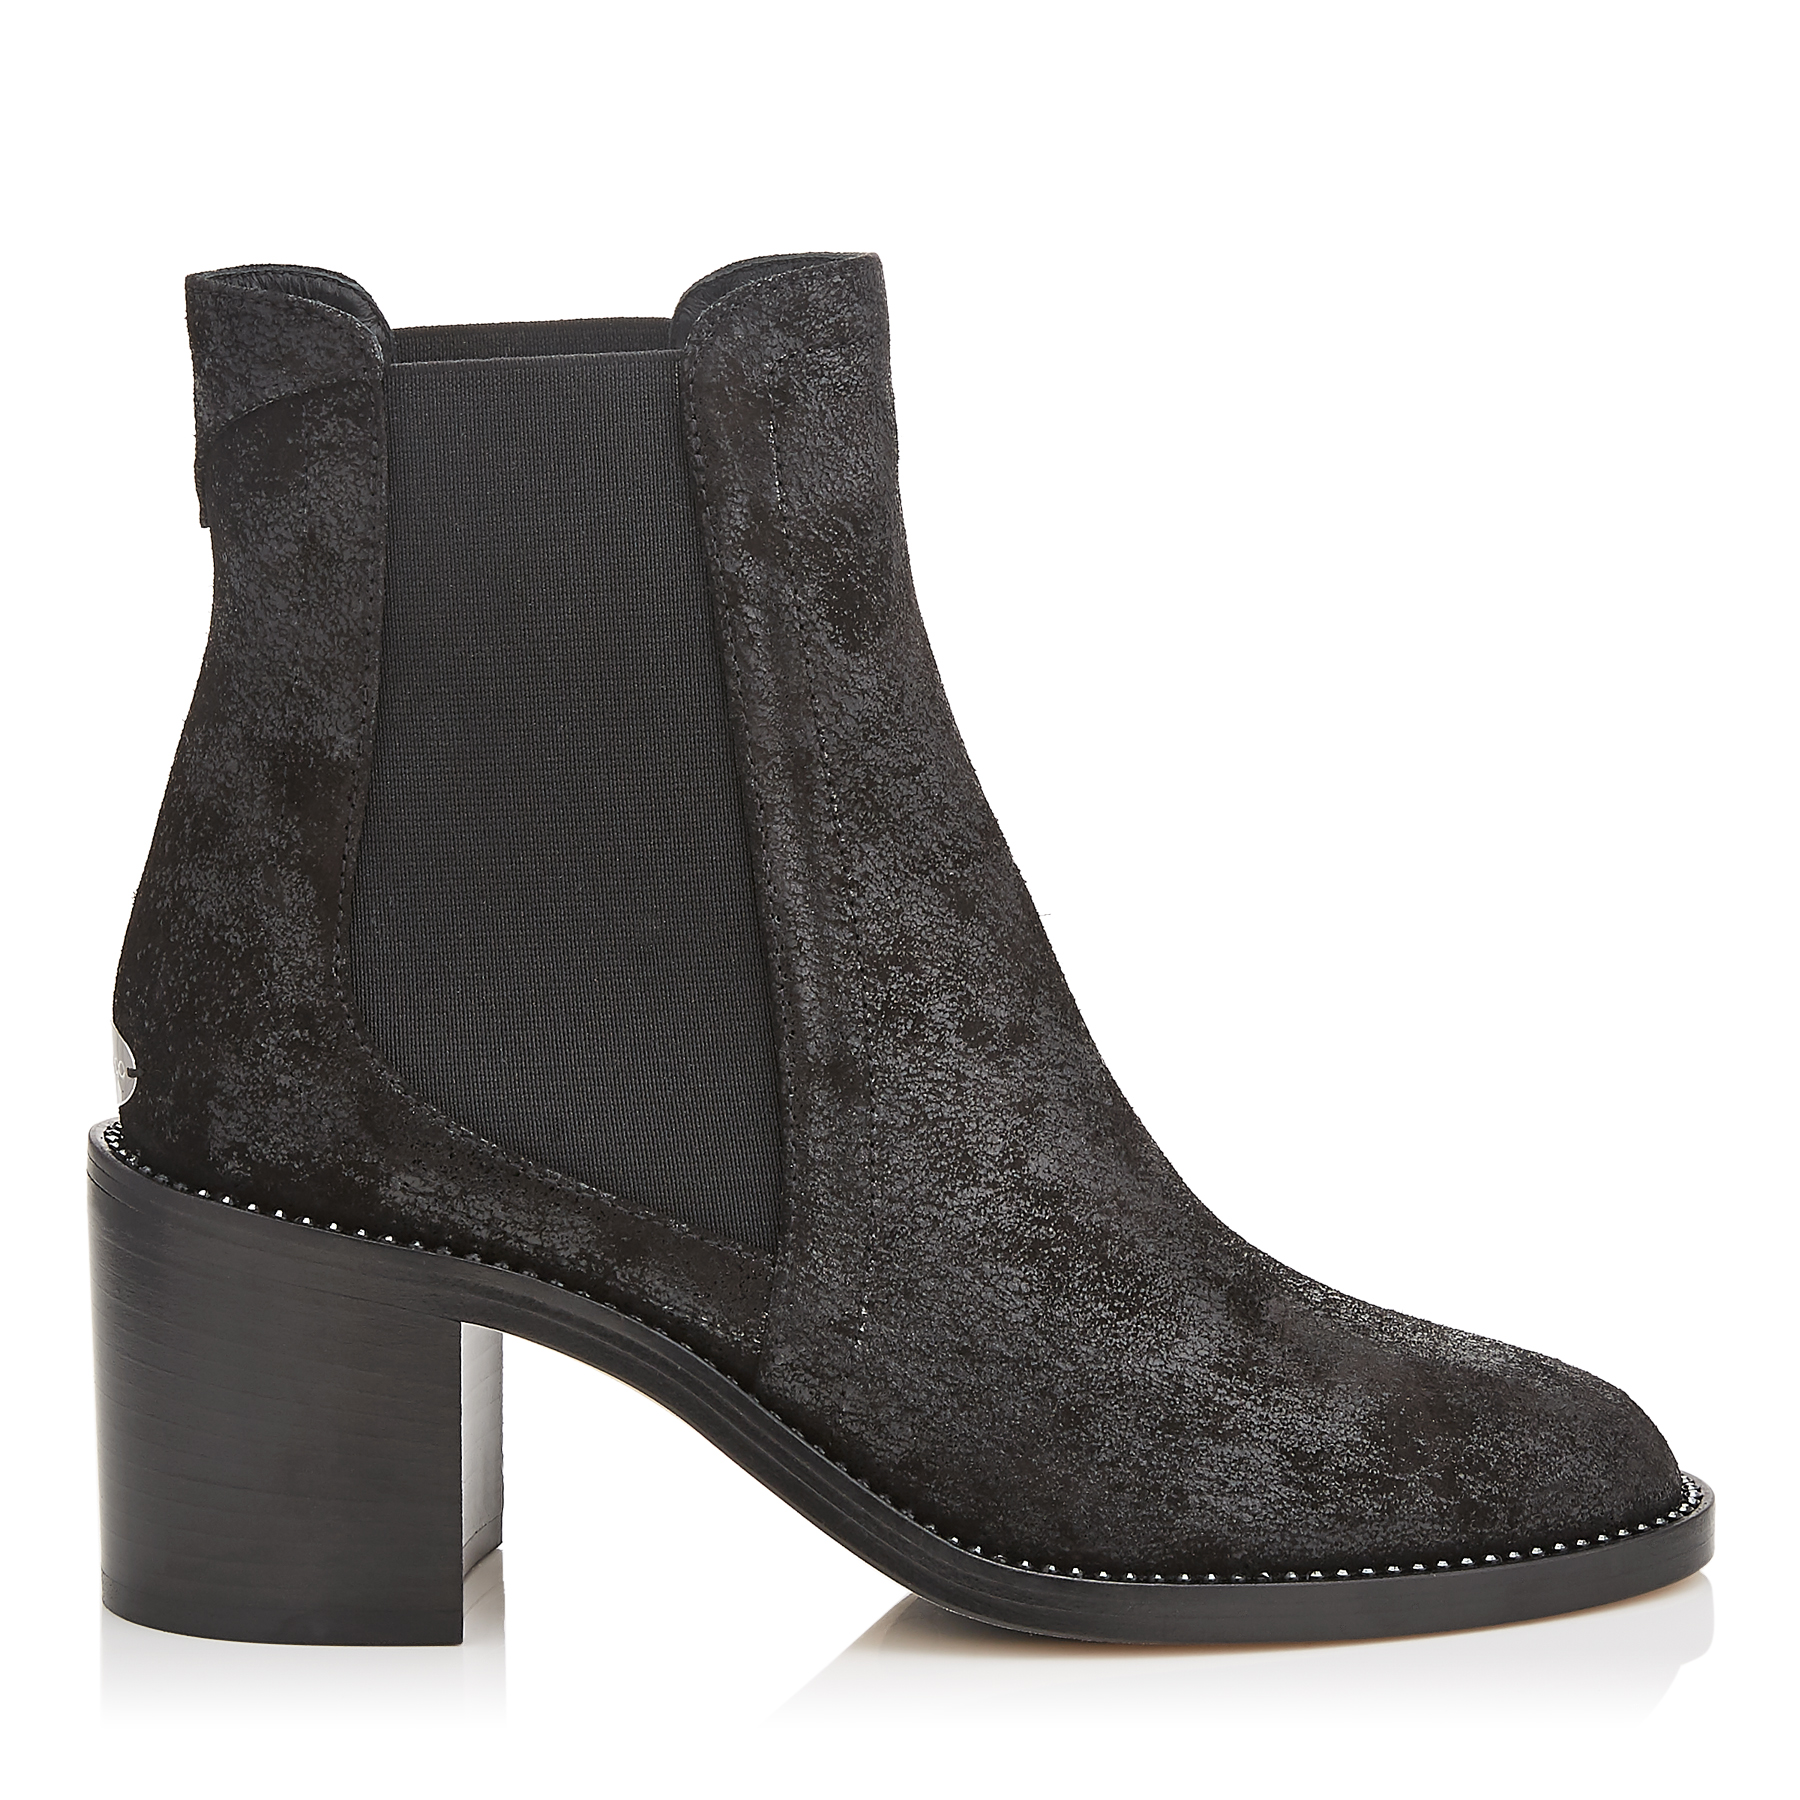 MERRIL 65 Black Wetlook Suede Ankle Boots with Crystal Welt by Jimmy Choo